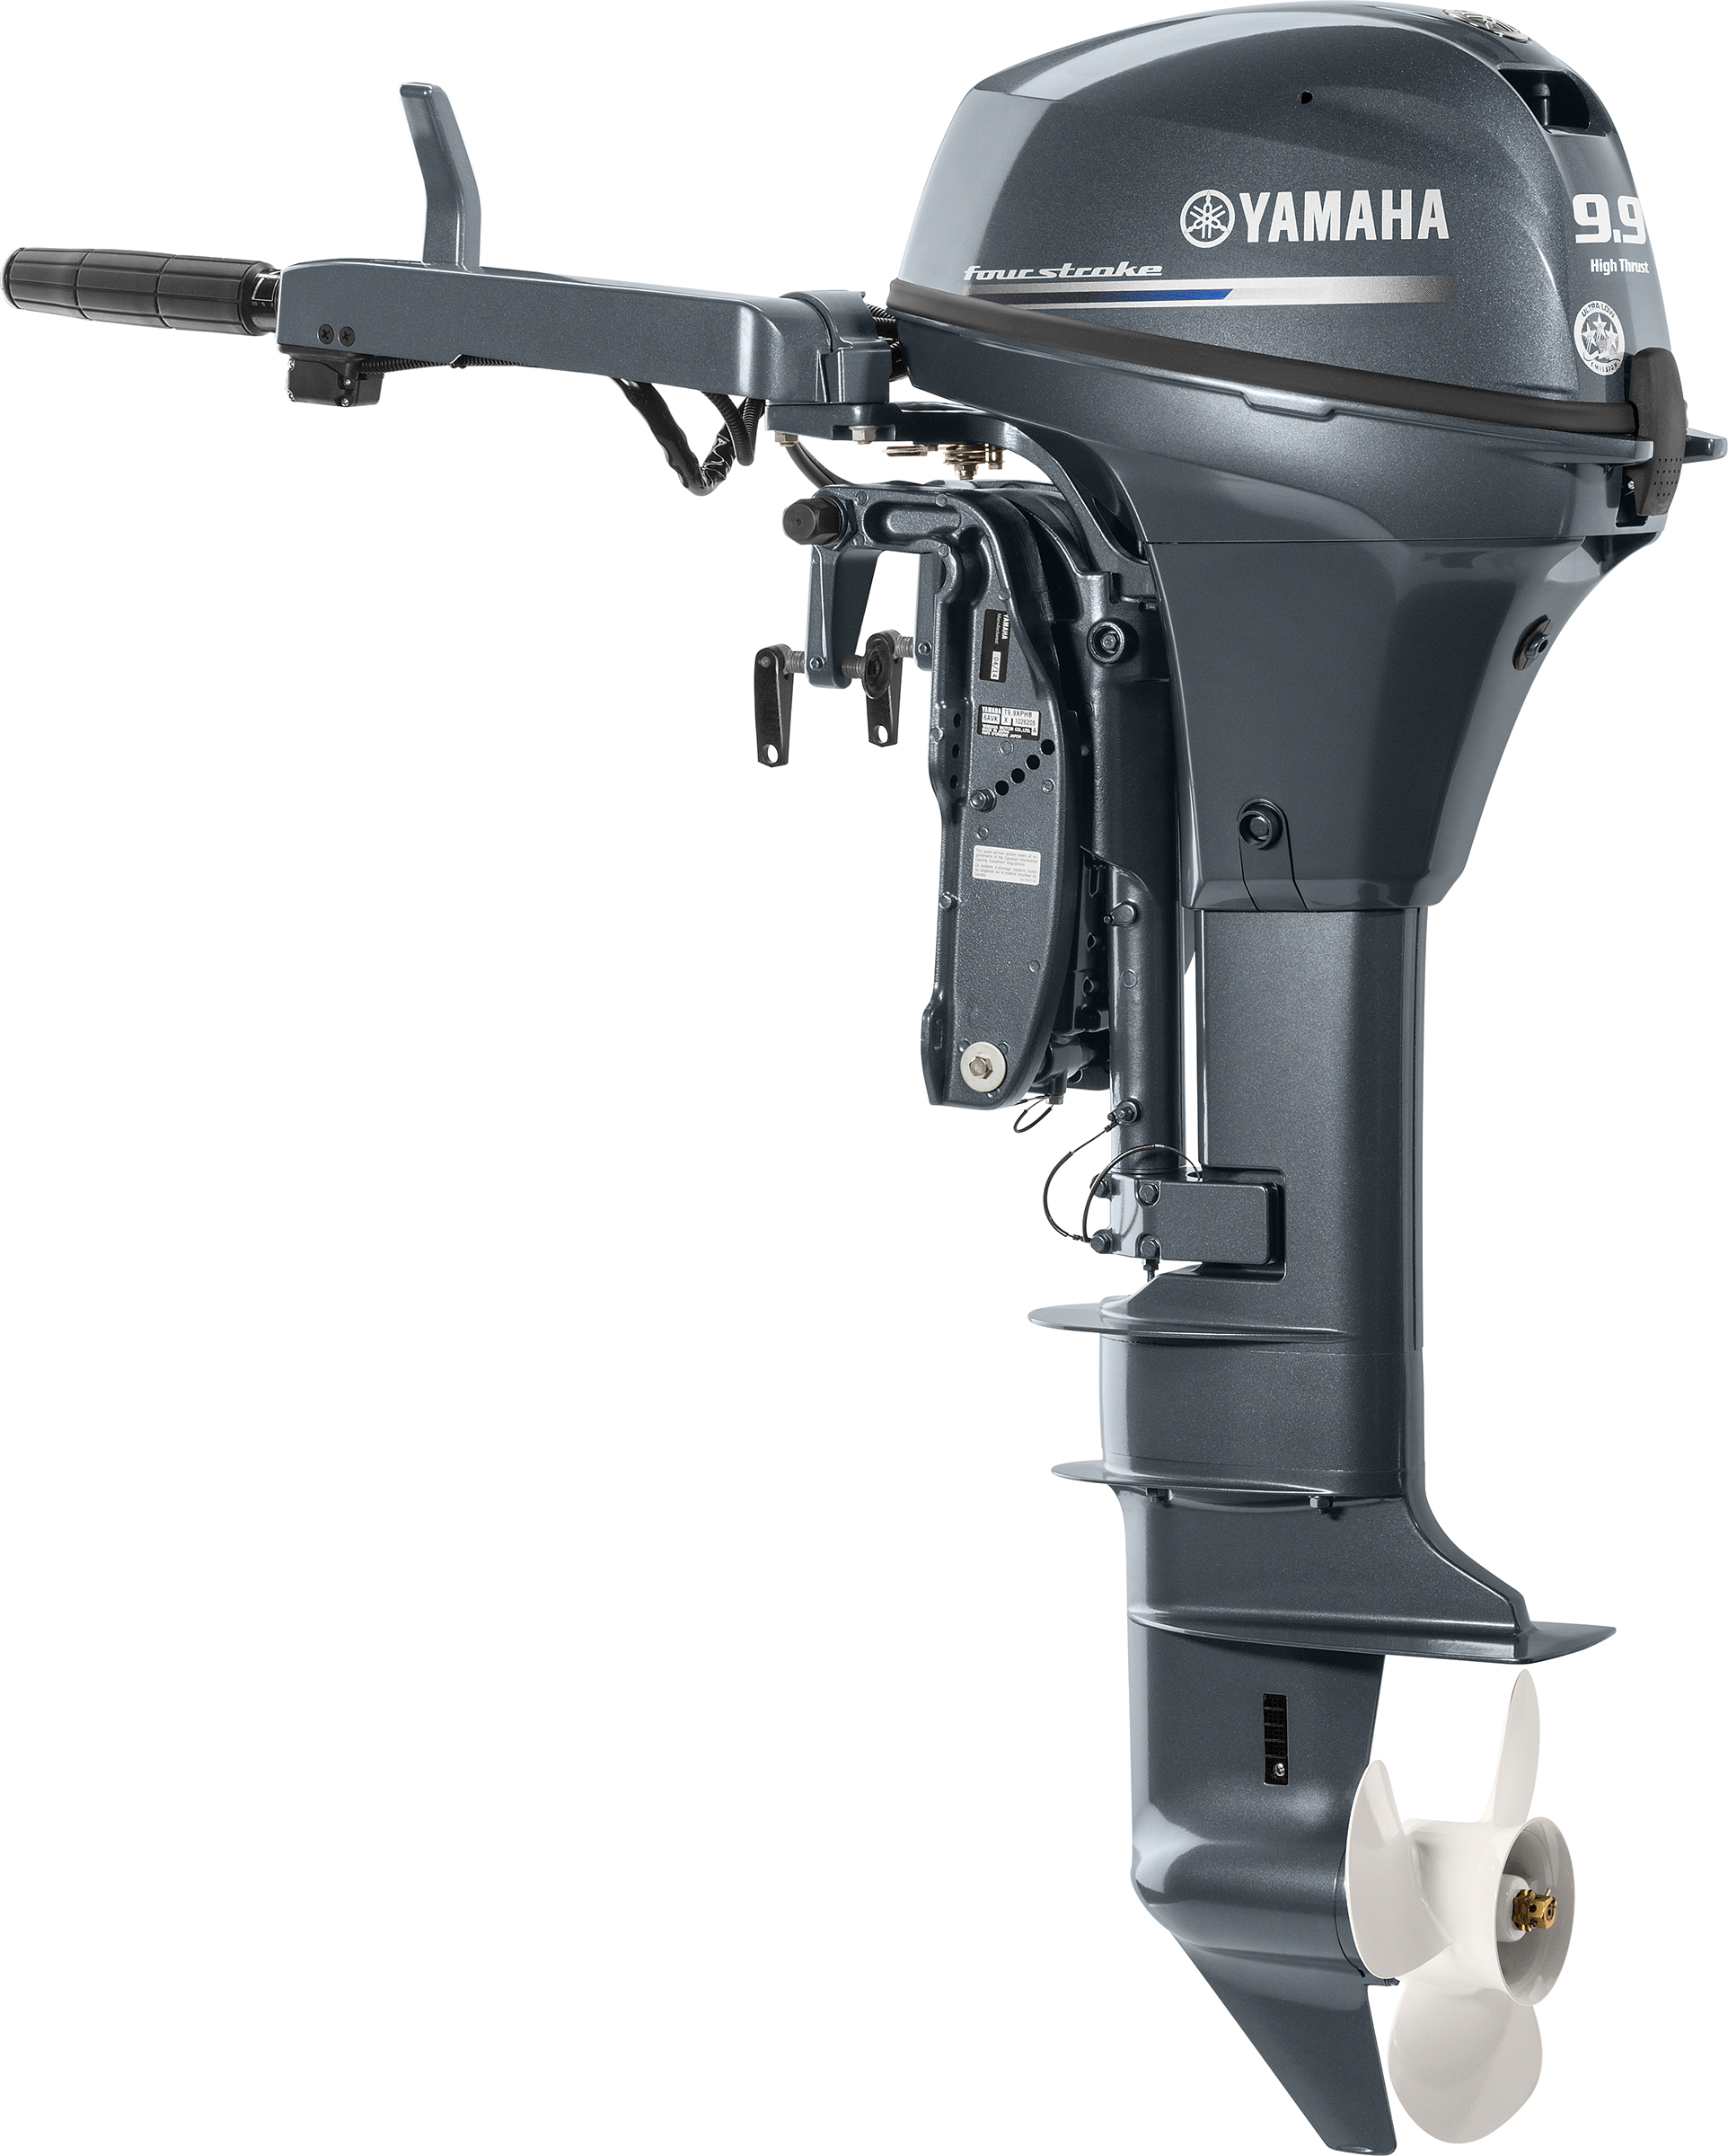 New demo 2013 yamaha t9 9lphb 9 9hp tiller outboard boat for New outboard boat motors